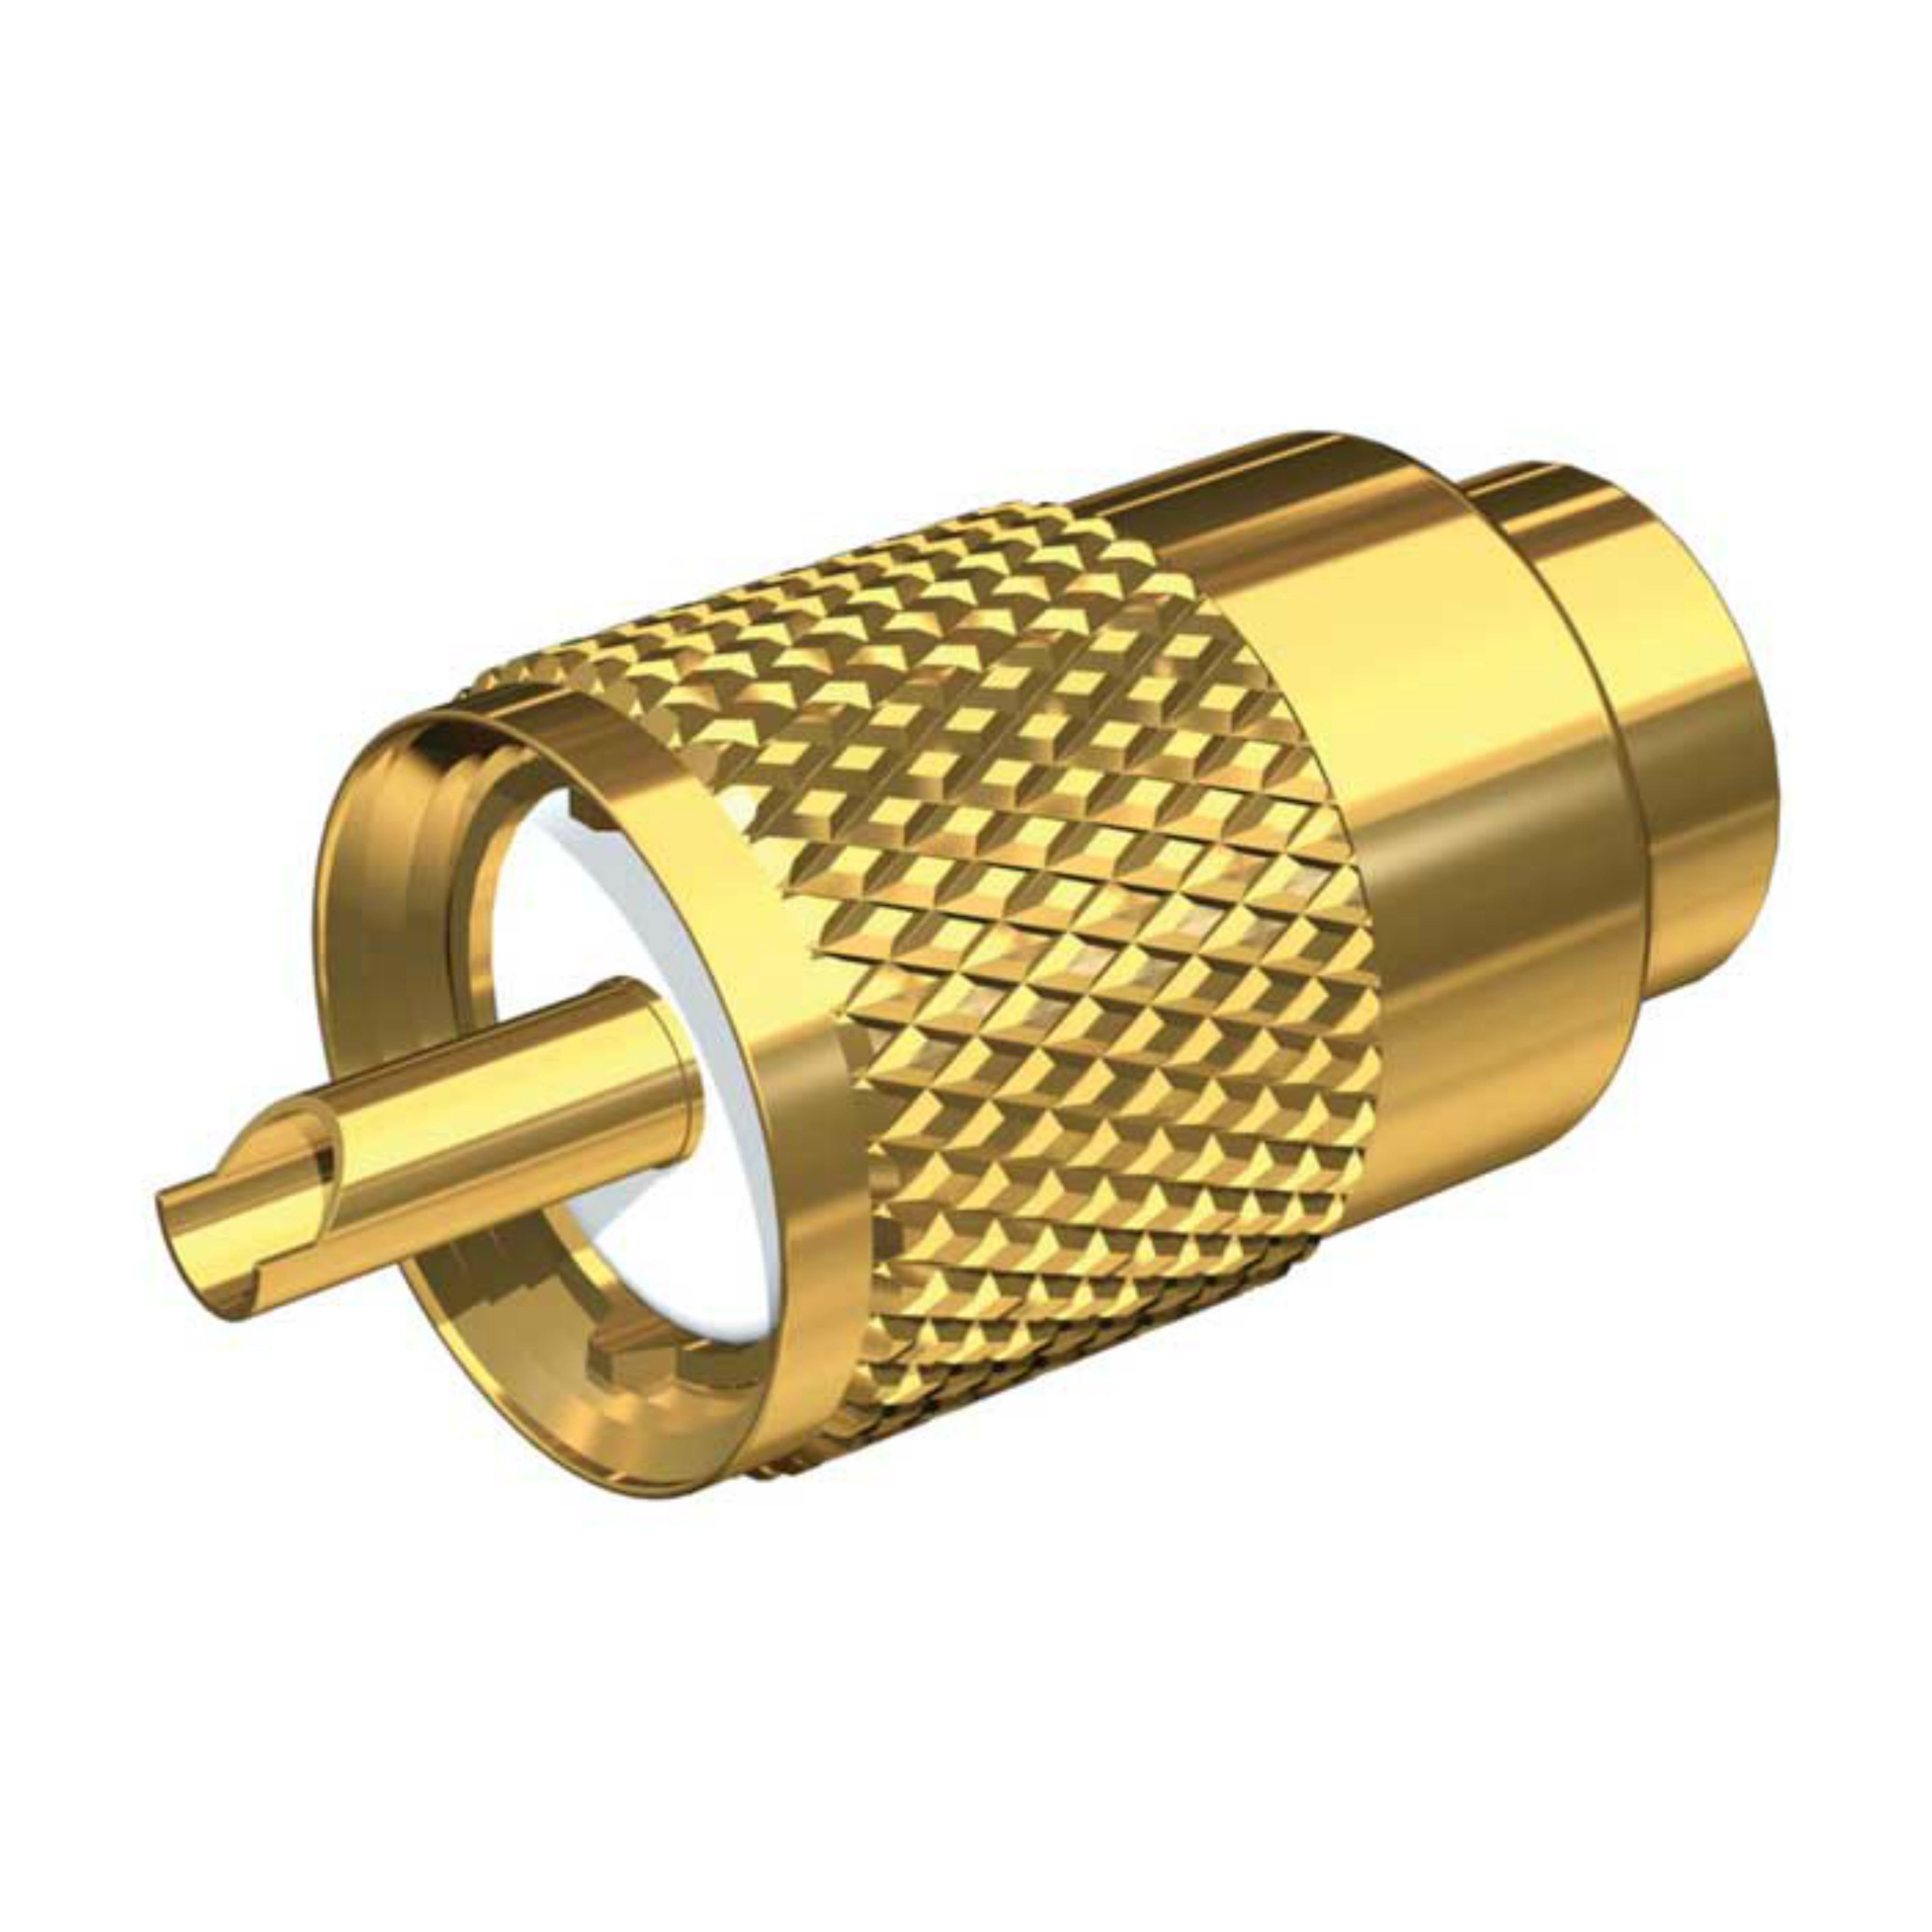 Shakespeare PL-259-8X-G|Gold-Plated Brass Connector|RG58 Cable|For Antenna